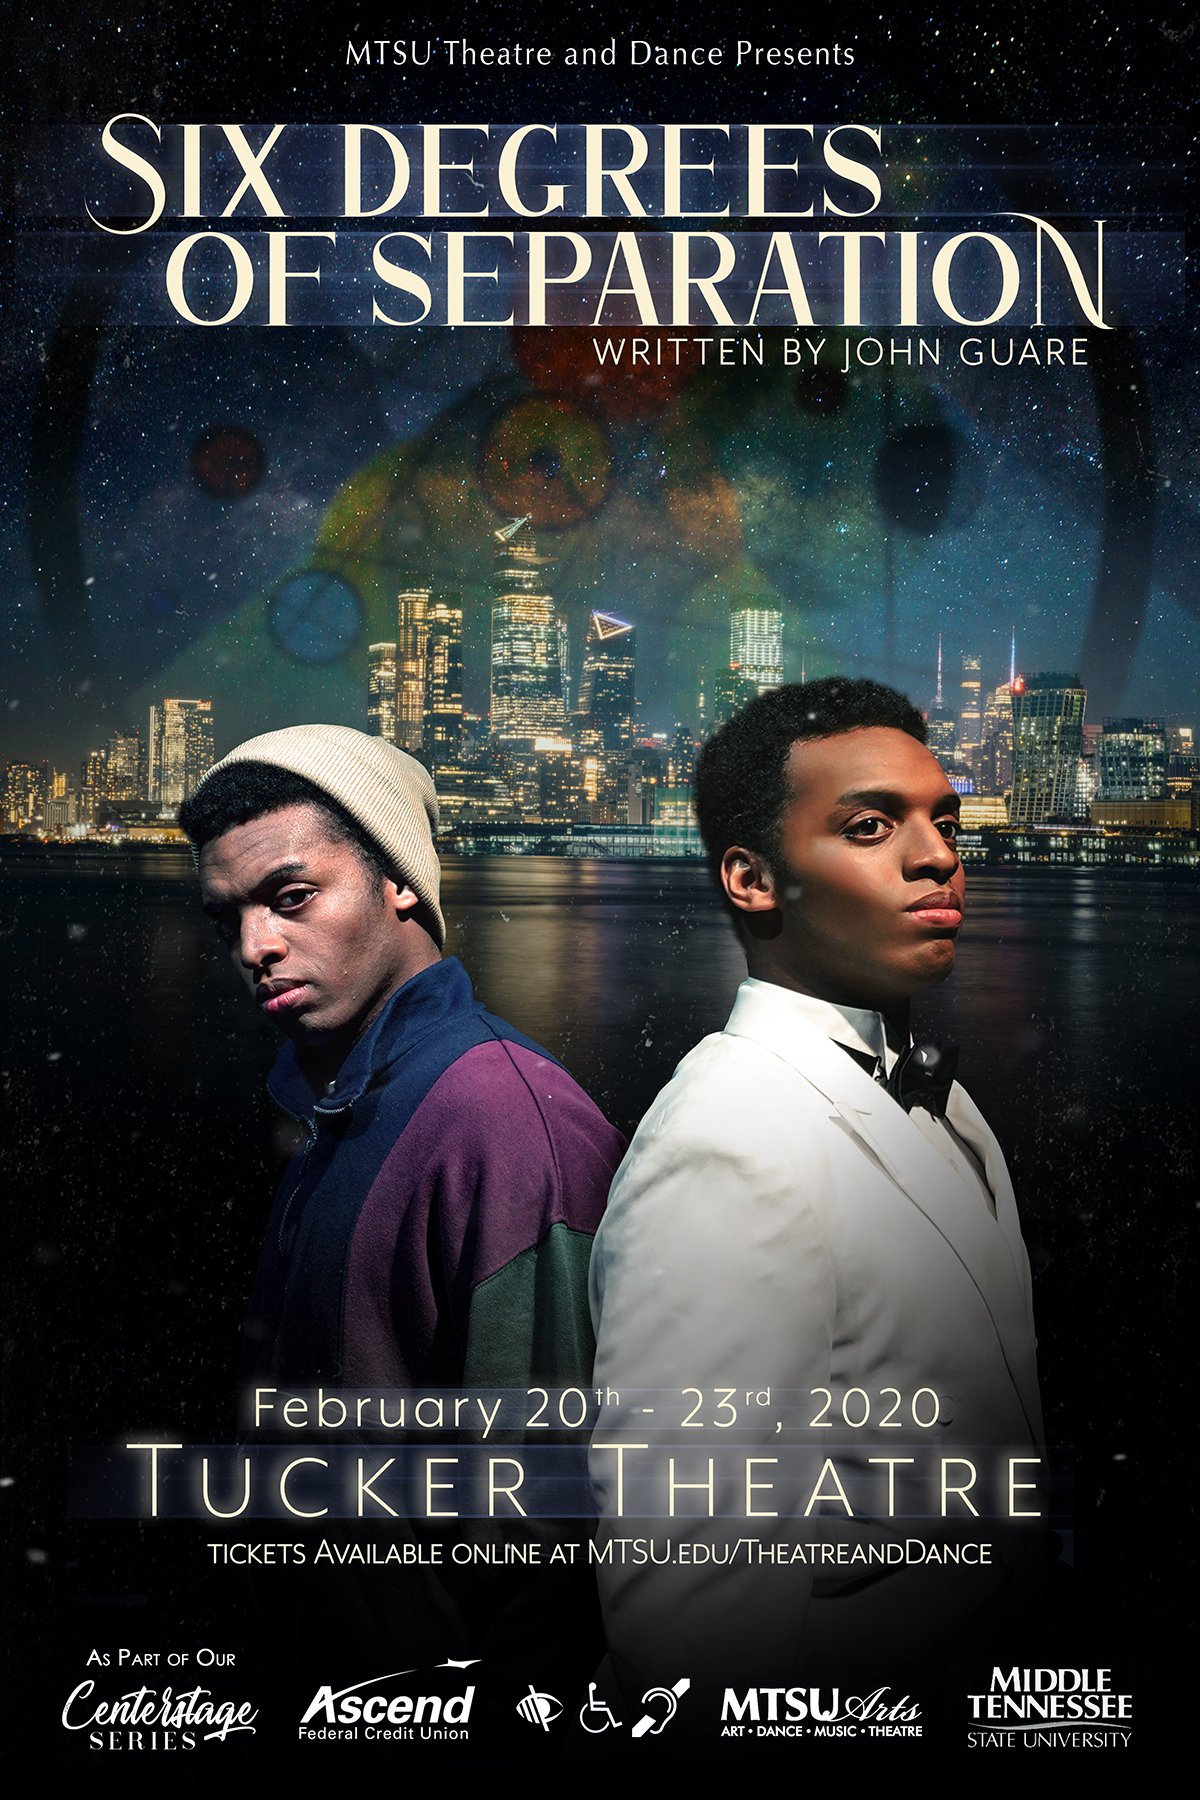 """poster for MTSU Theatre production of """"Six Degrees of Separation,"""" set Feb. 20-23, 2020, in Tucker Theatre"""